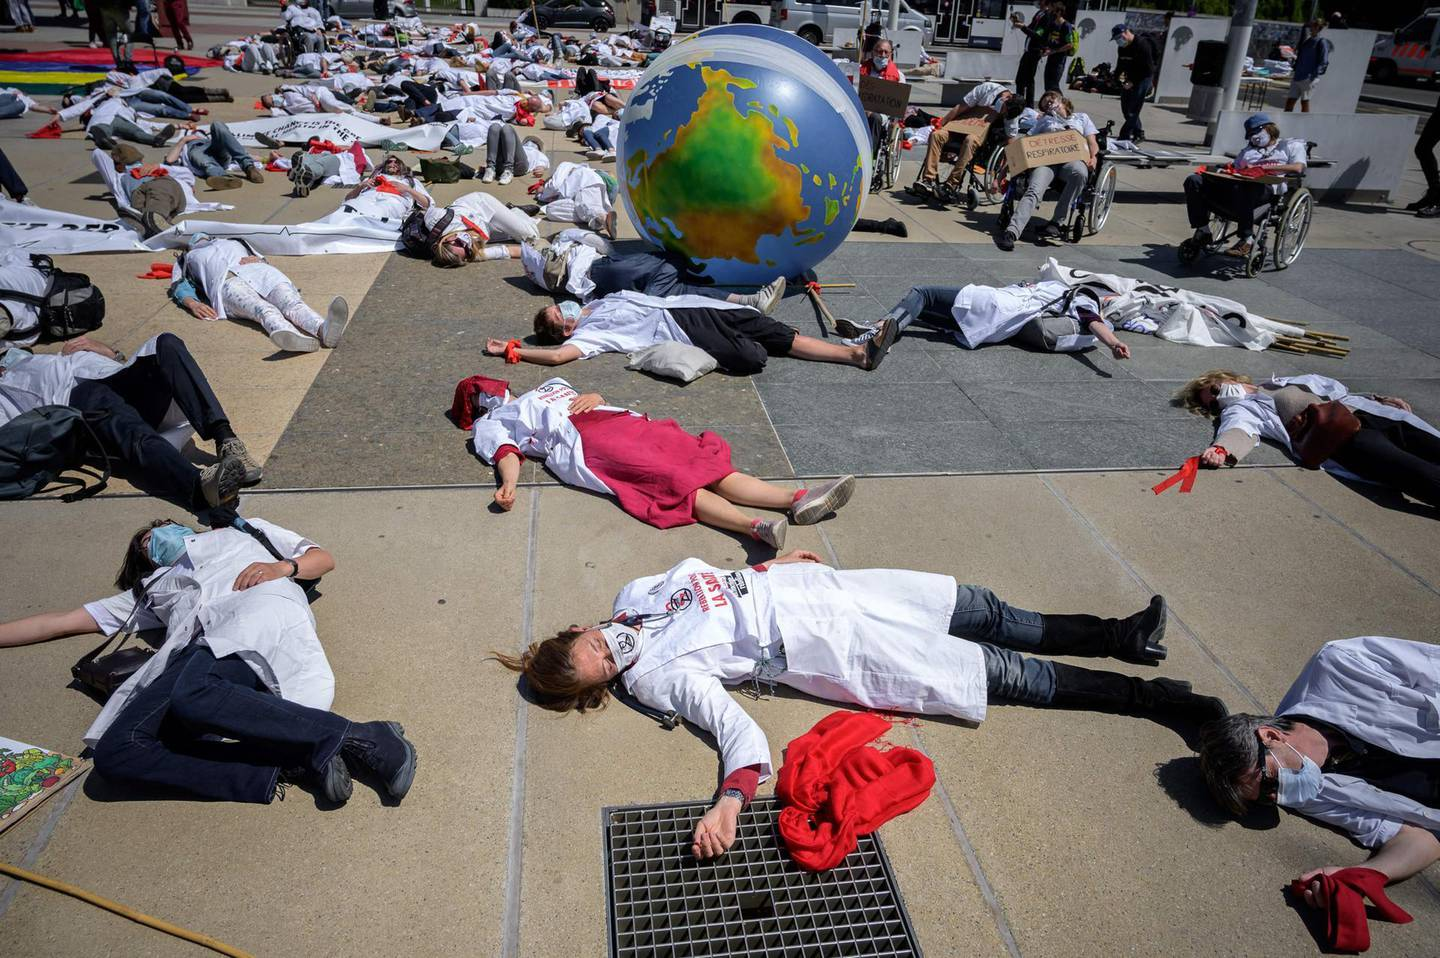 Doctors for Extinction Rebellion lay down prior to march to the WHO headquarters during a protest on the sideline of the WHO's World Health Assembly in Geneva on May 29, 2021. Hundreds of health workers marched to the WHO demanding that authorities in all countries recognise and act to counter the health risks of climate change. / AFP / Fabrice COFFRINI